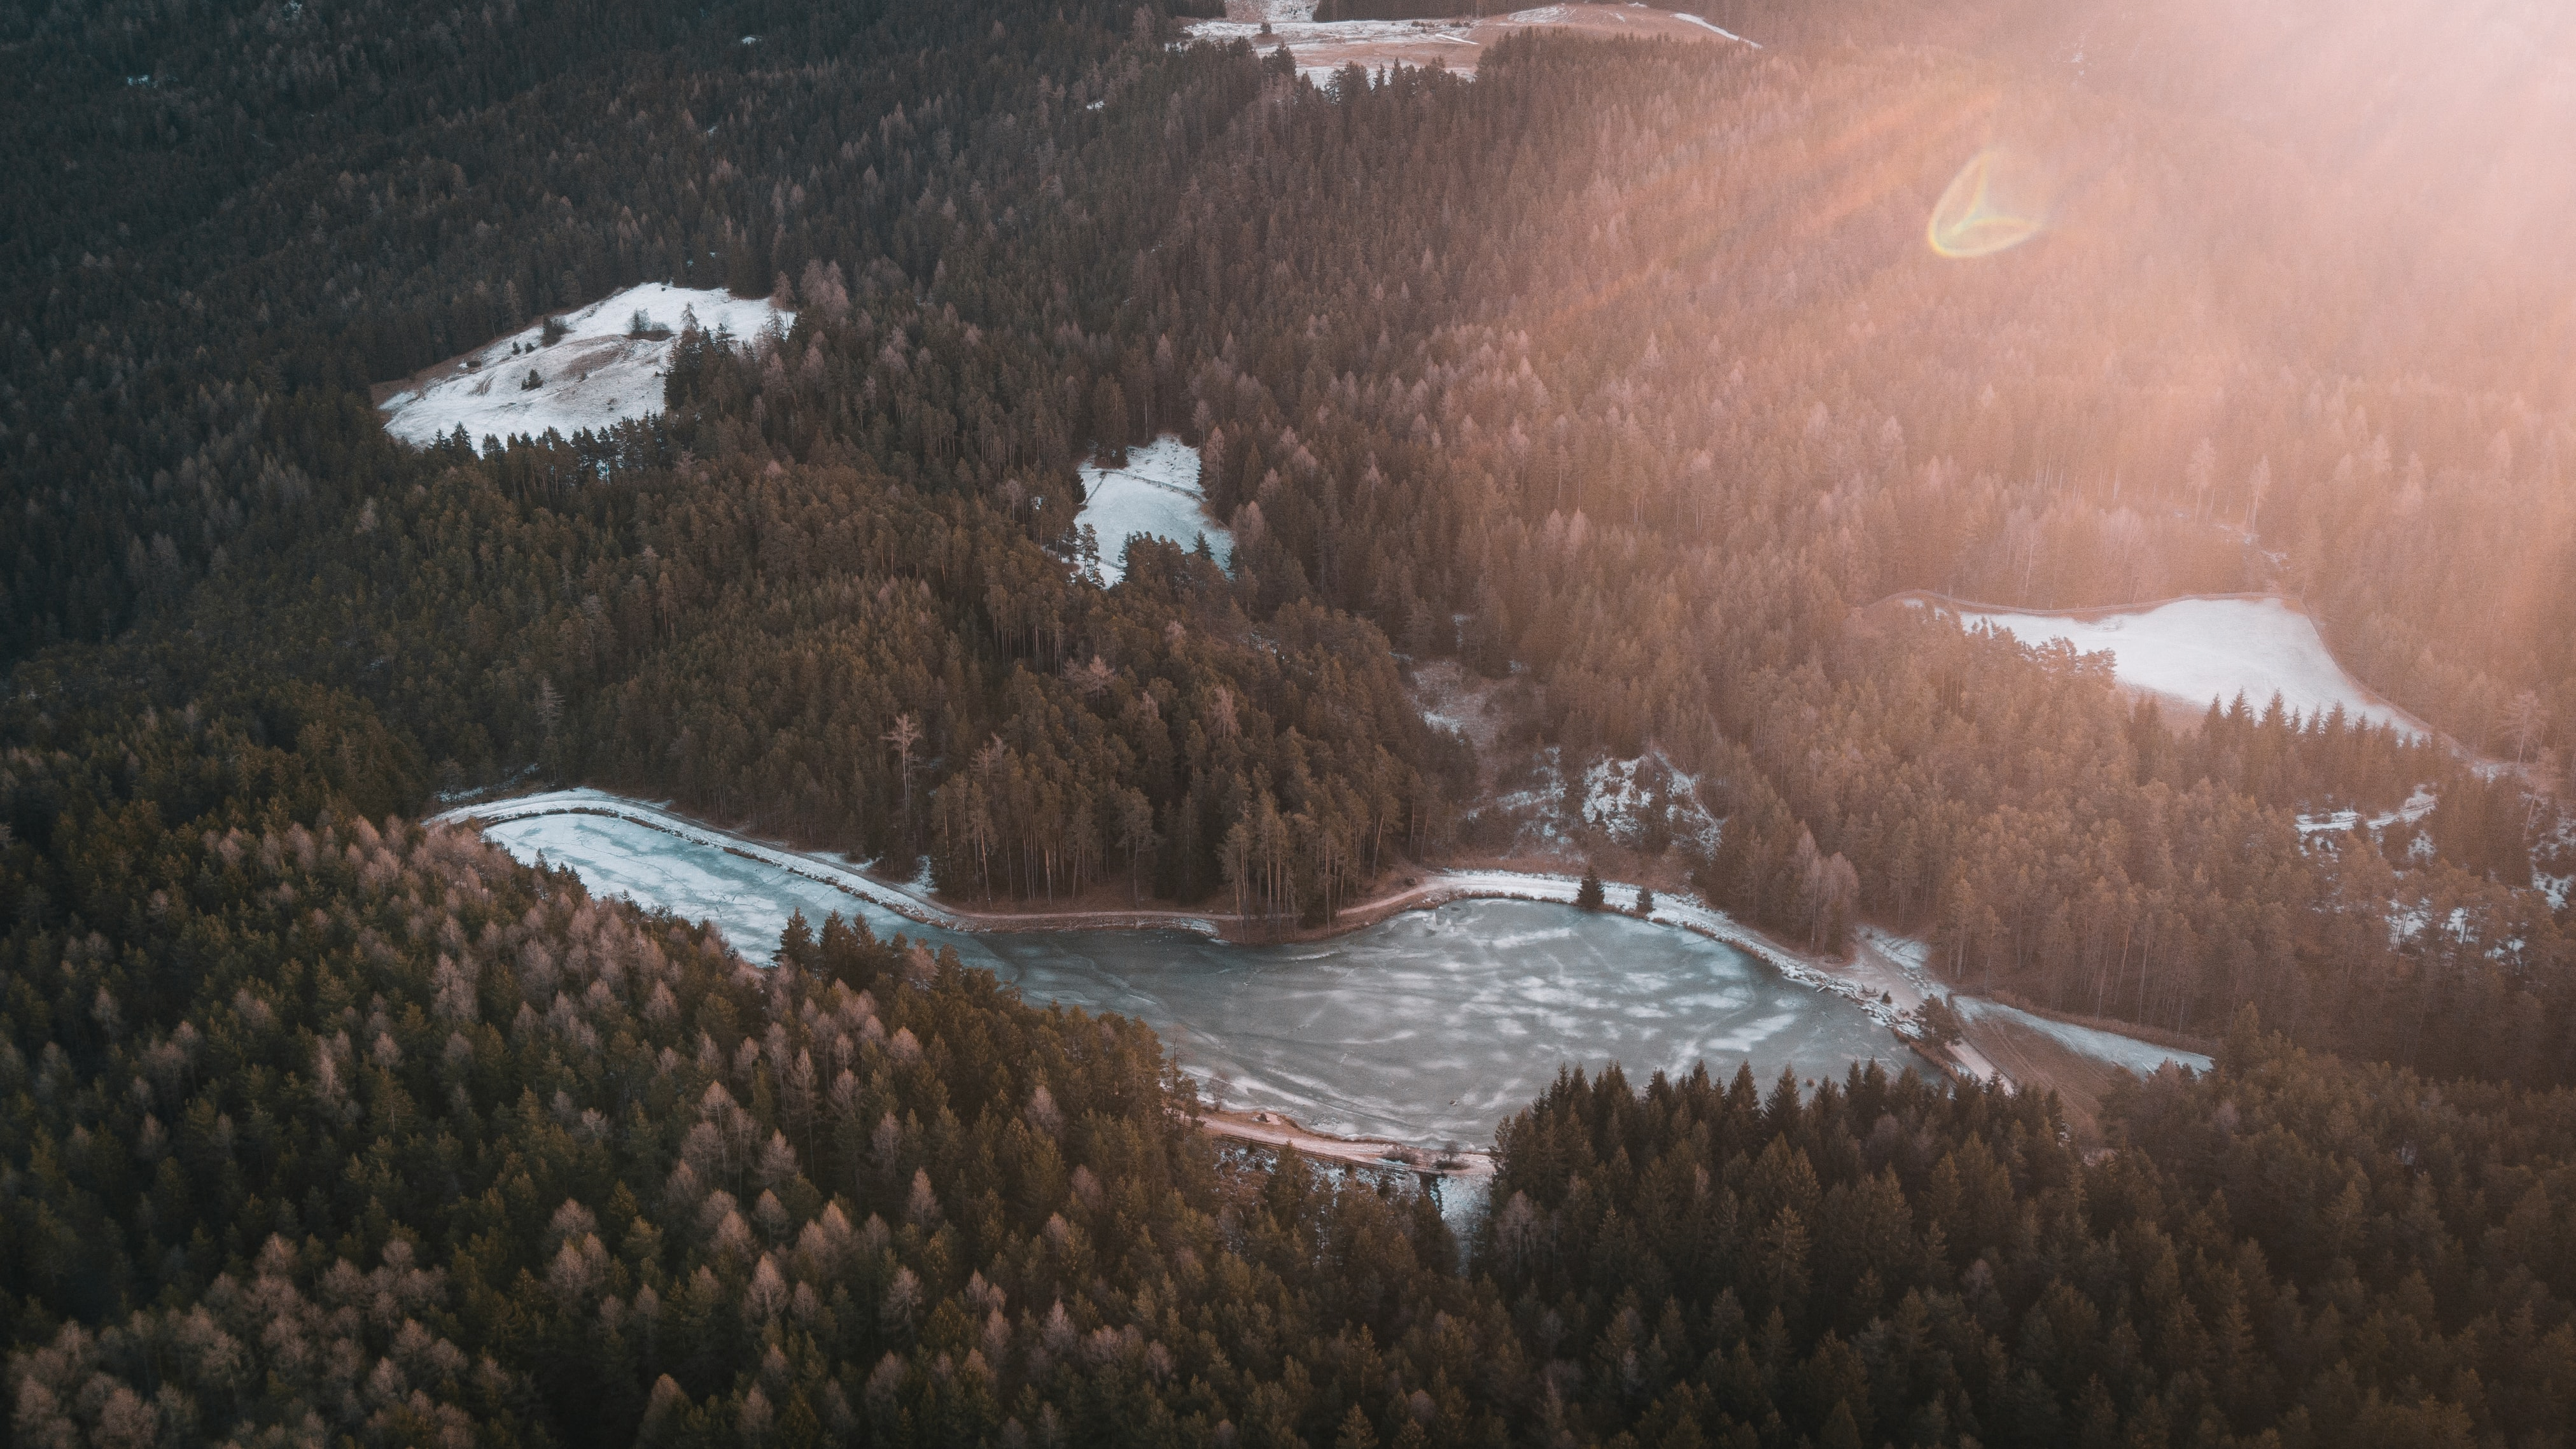 birds eye photography of body of water near forest